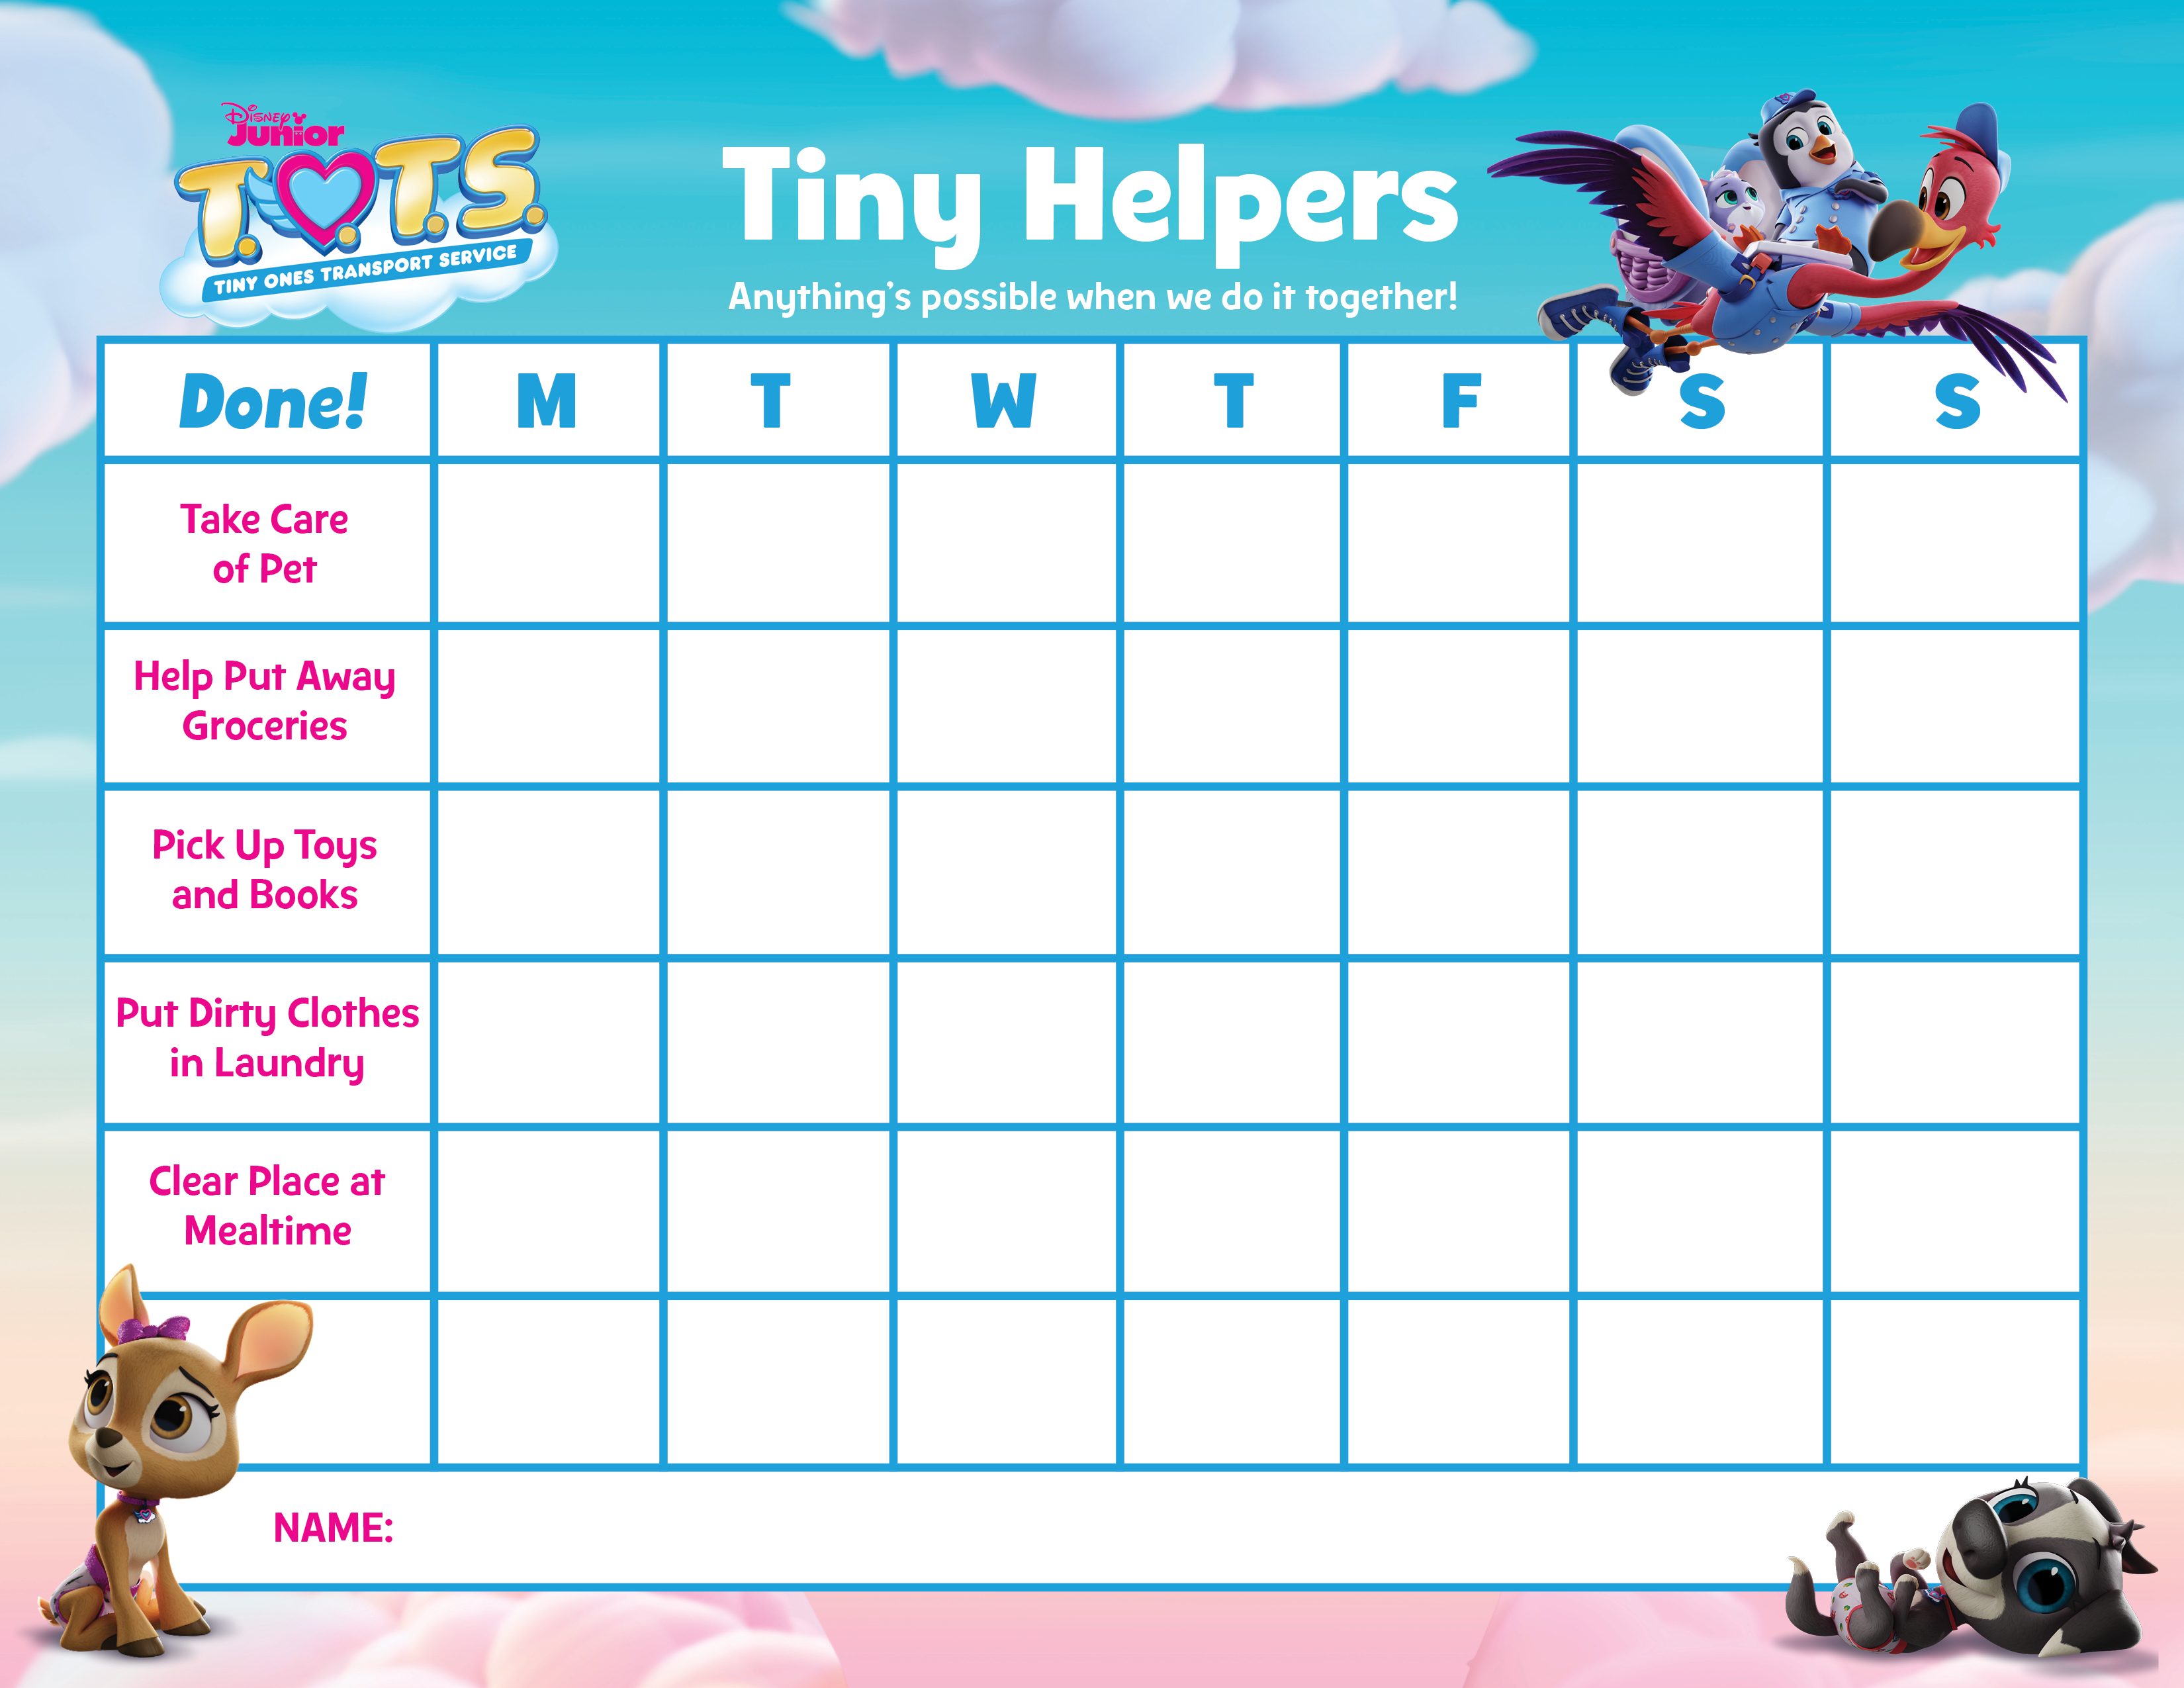 Pin On T O T S Tiny Ones Transport Service Disney Junior [ png ]